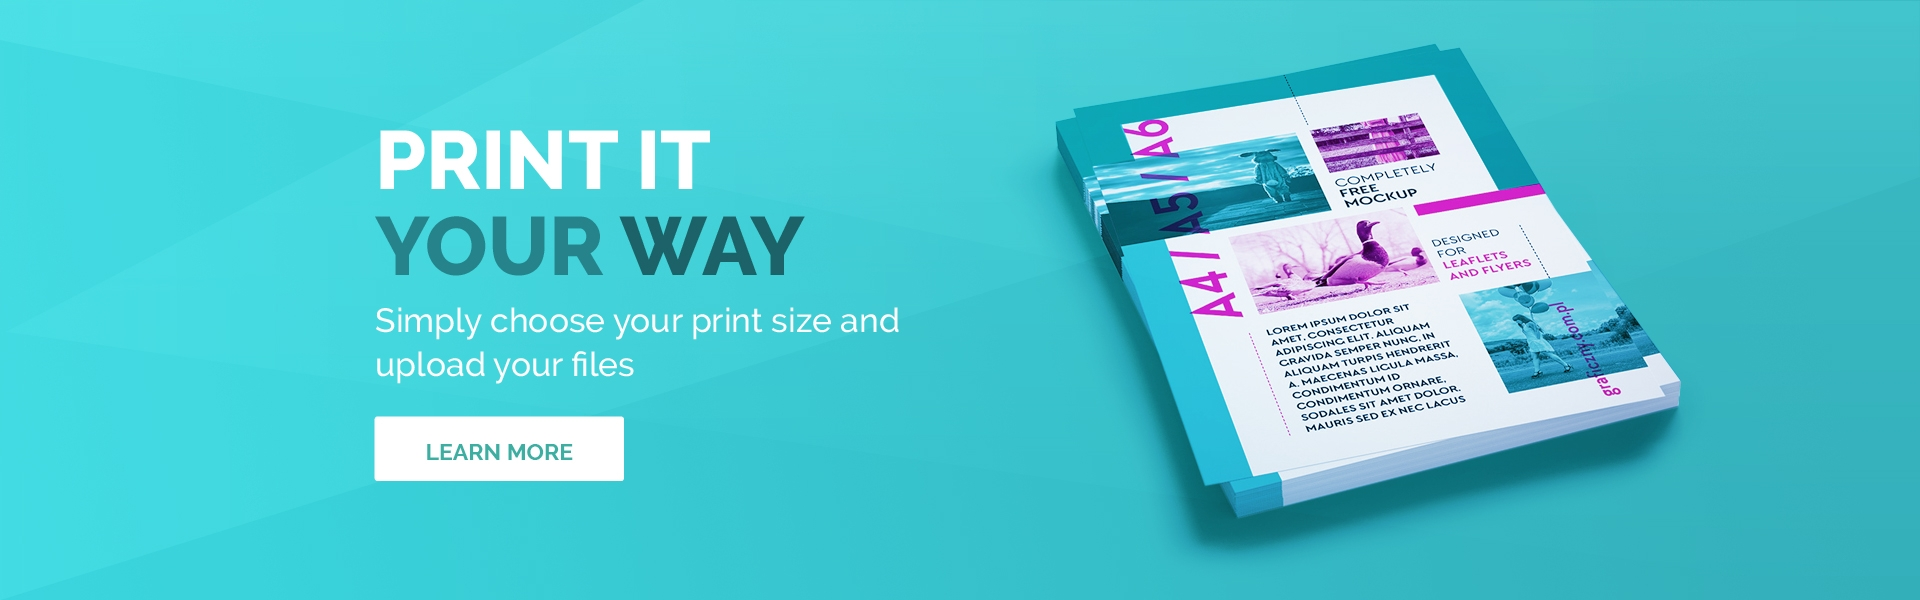 Print it your way